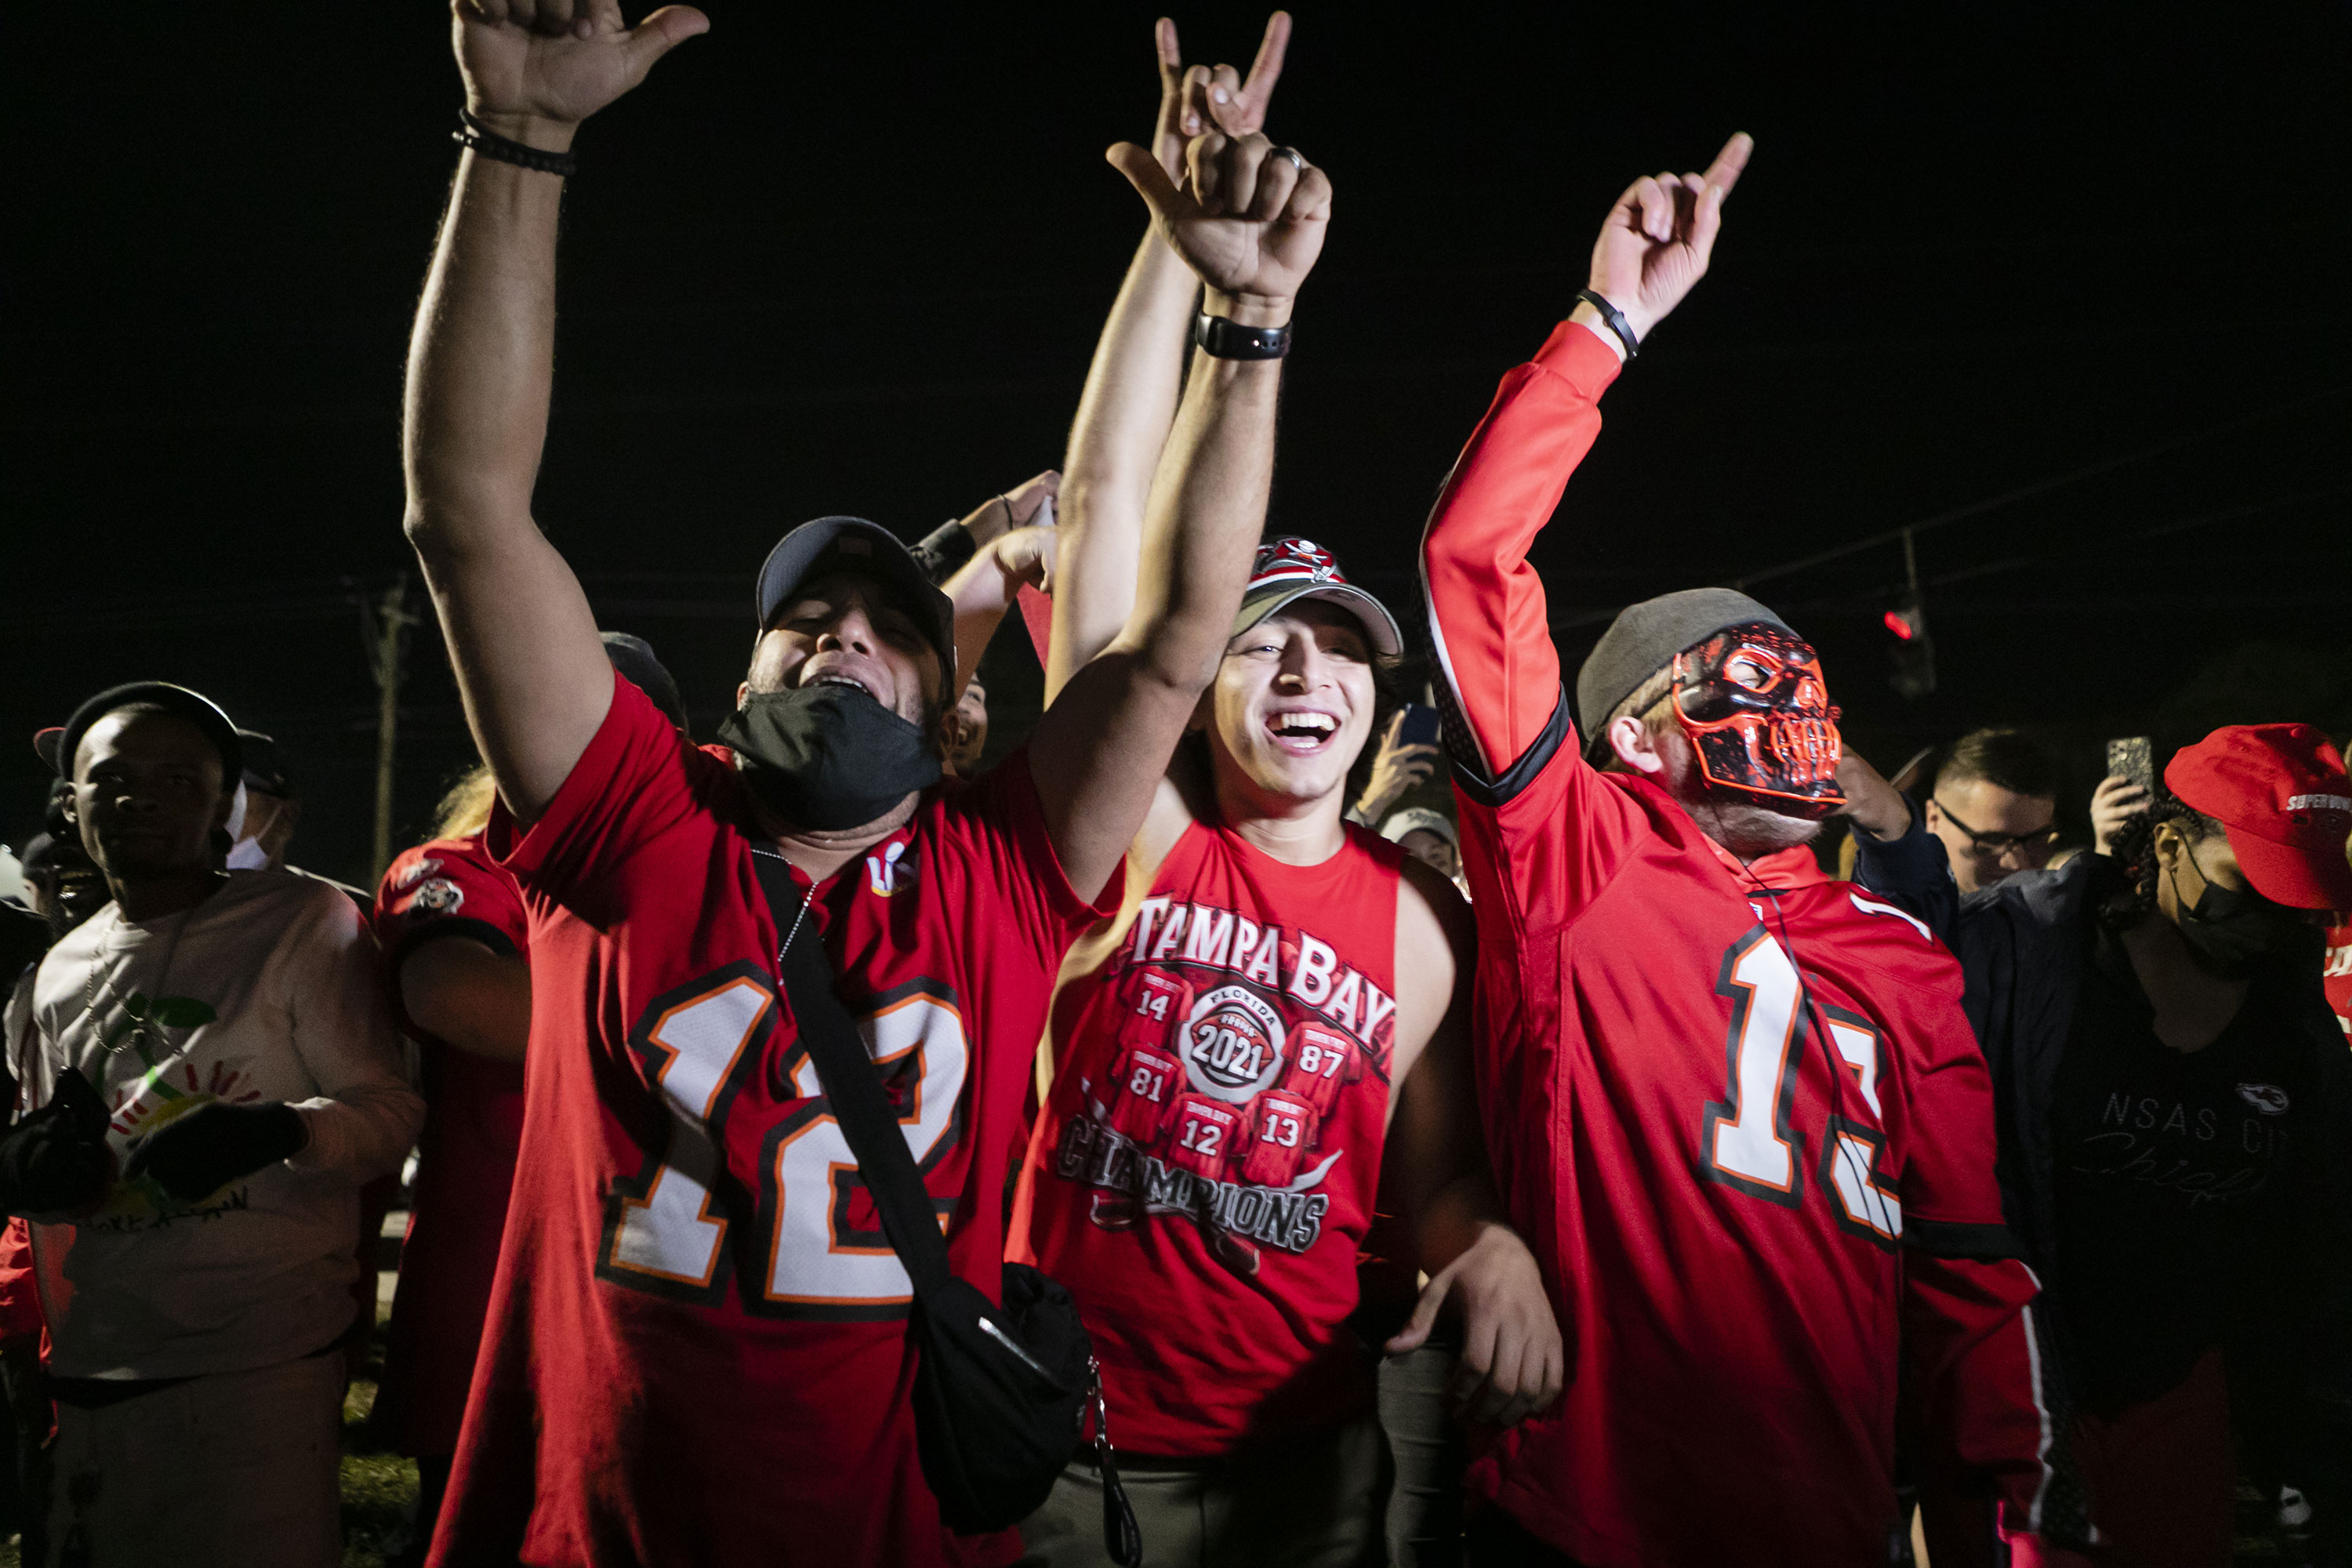 Tampa Bay Buccaneers fans celebrate the Super Bowl victory outside Raymond James Stadium in Tampa, Florida, on February 7.